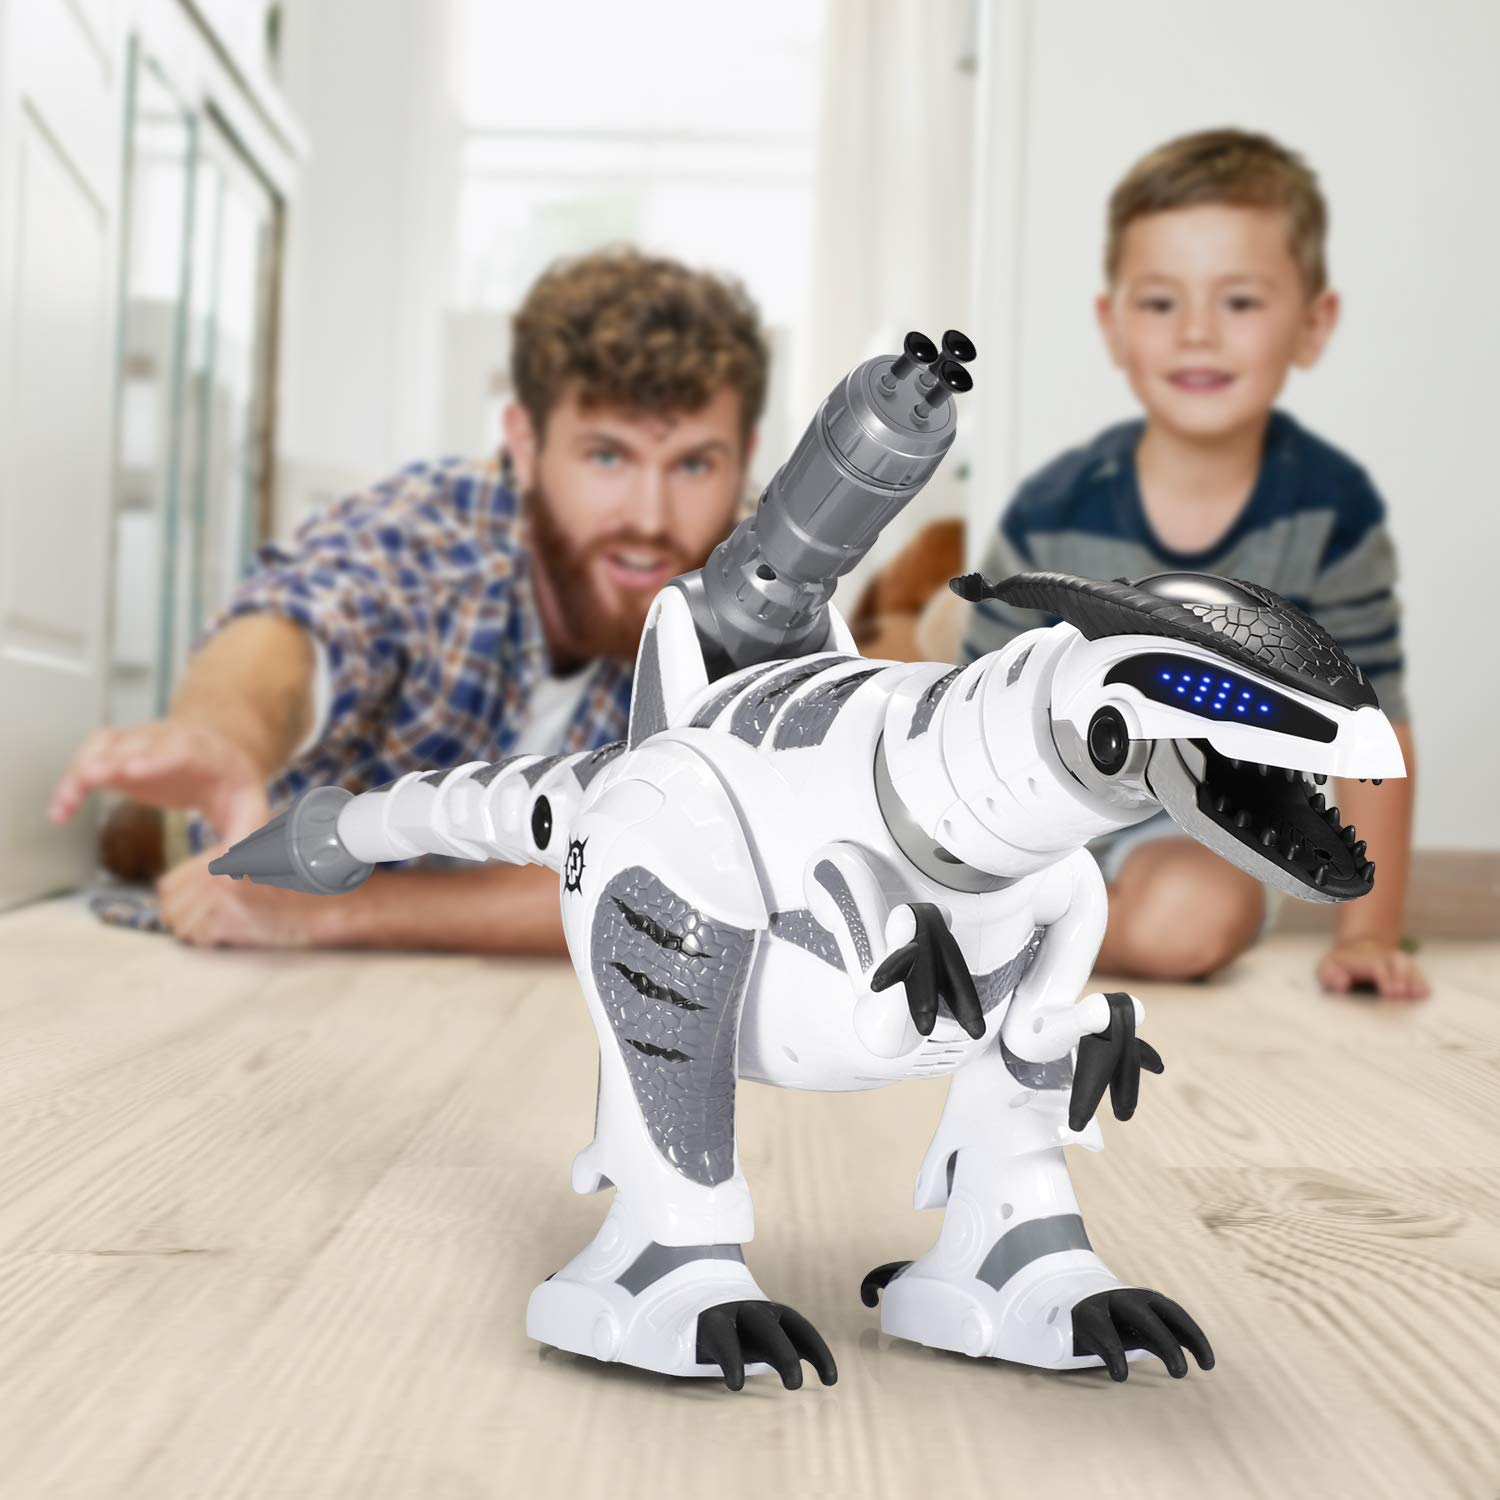 SGILE RC Dinosaur Robot Toy, Smart Programmable Interactive Walk Sing Dance for Kids Gift Present by SGILE (Image #7)